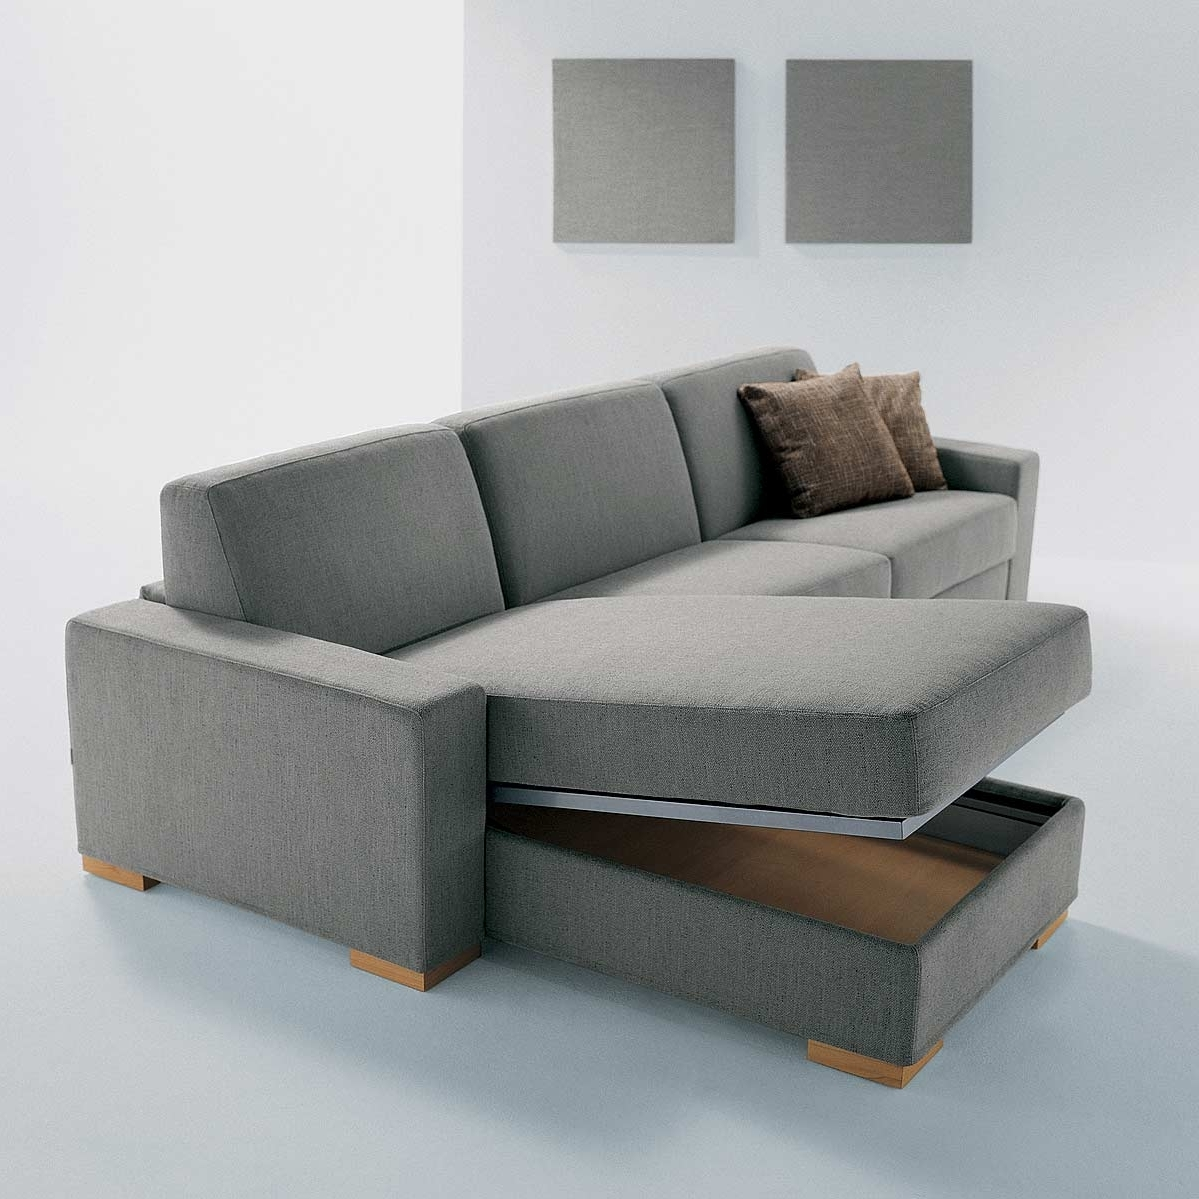 Famous Sectional Sofas With Storage With Regard To Furniture : Sofa With Drawers Fabric Sectional Sofas With Chaise (View 4 of 15)